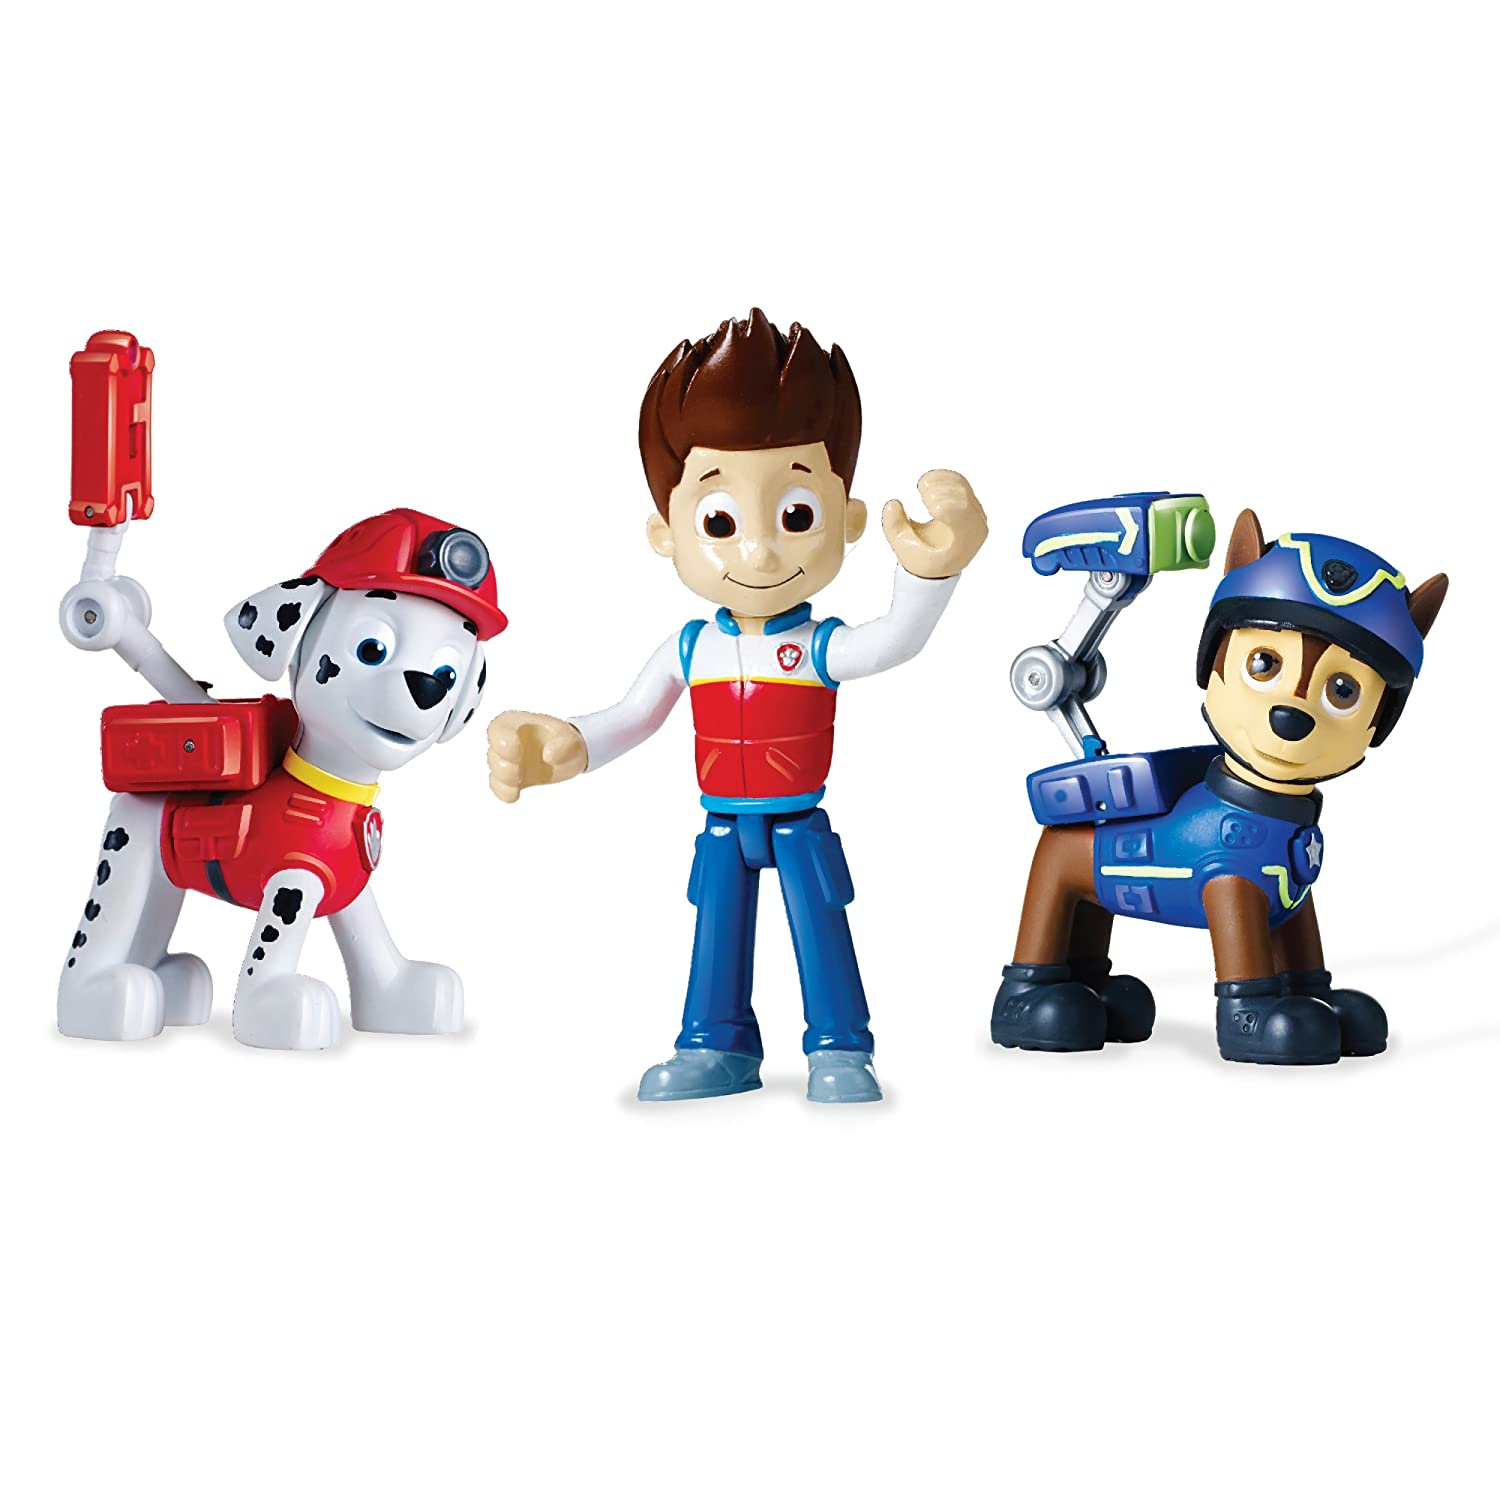 Paw Patrol Action Pack Pups Figure Set, 3 Pack, Ryder, Chase & Marshall